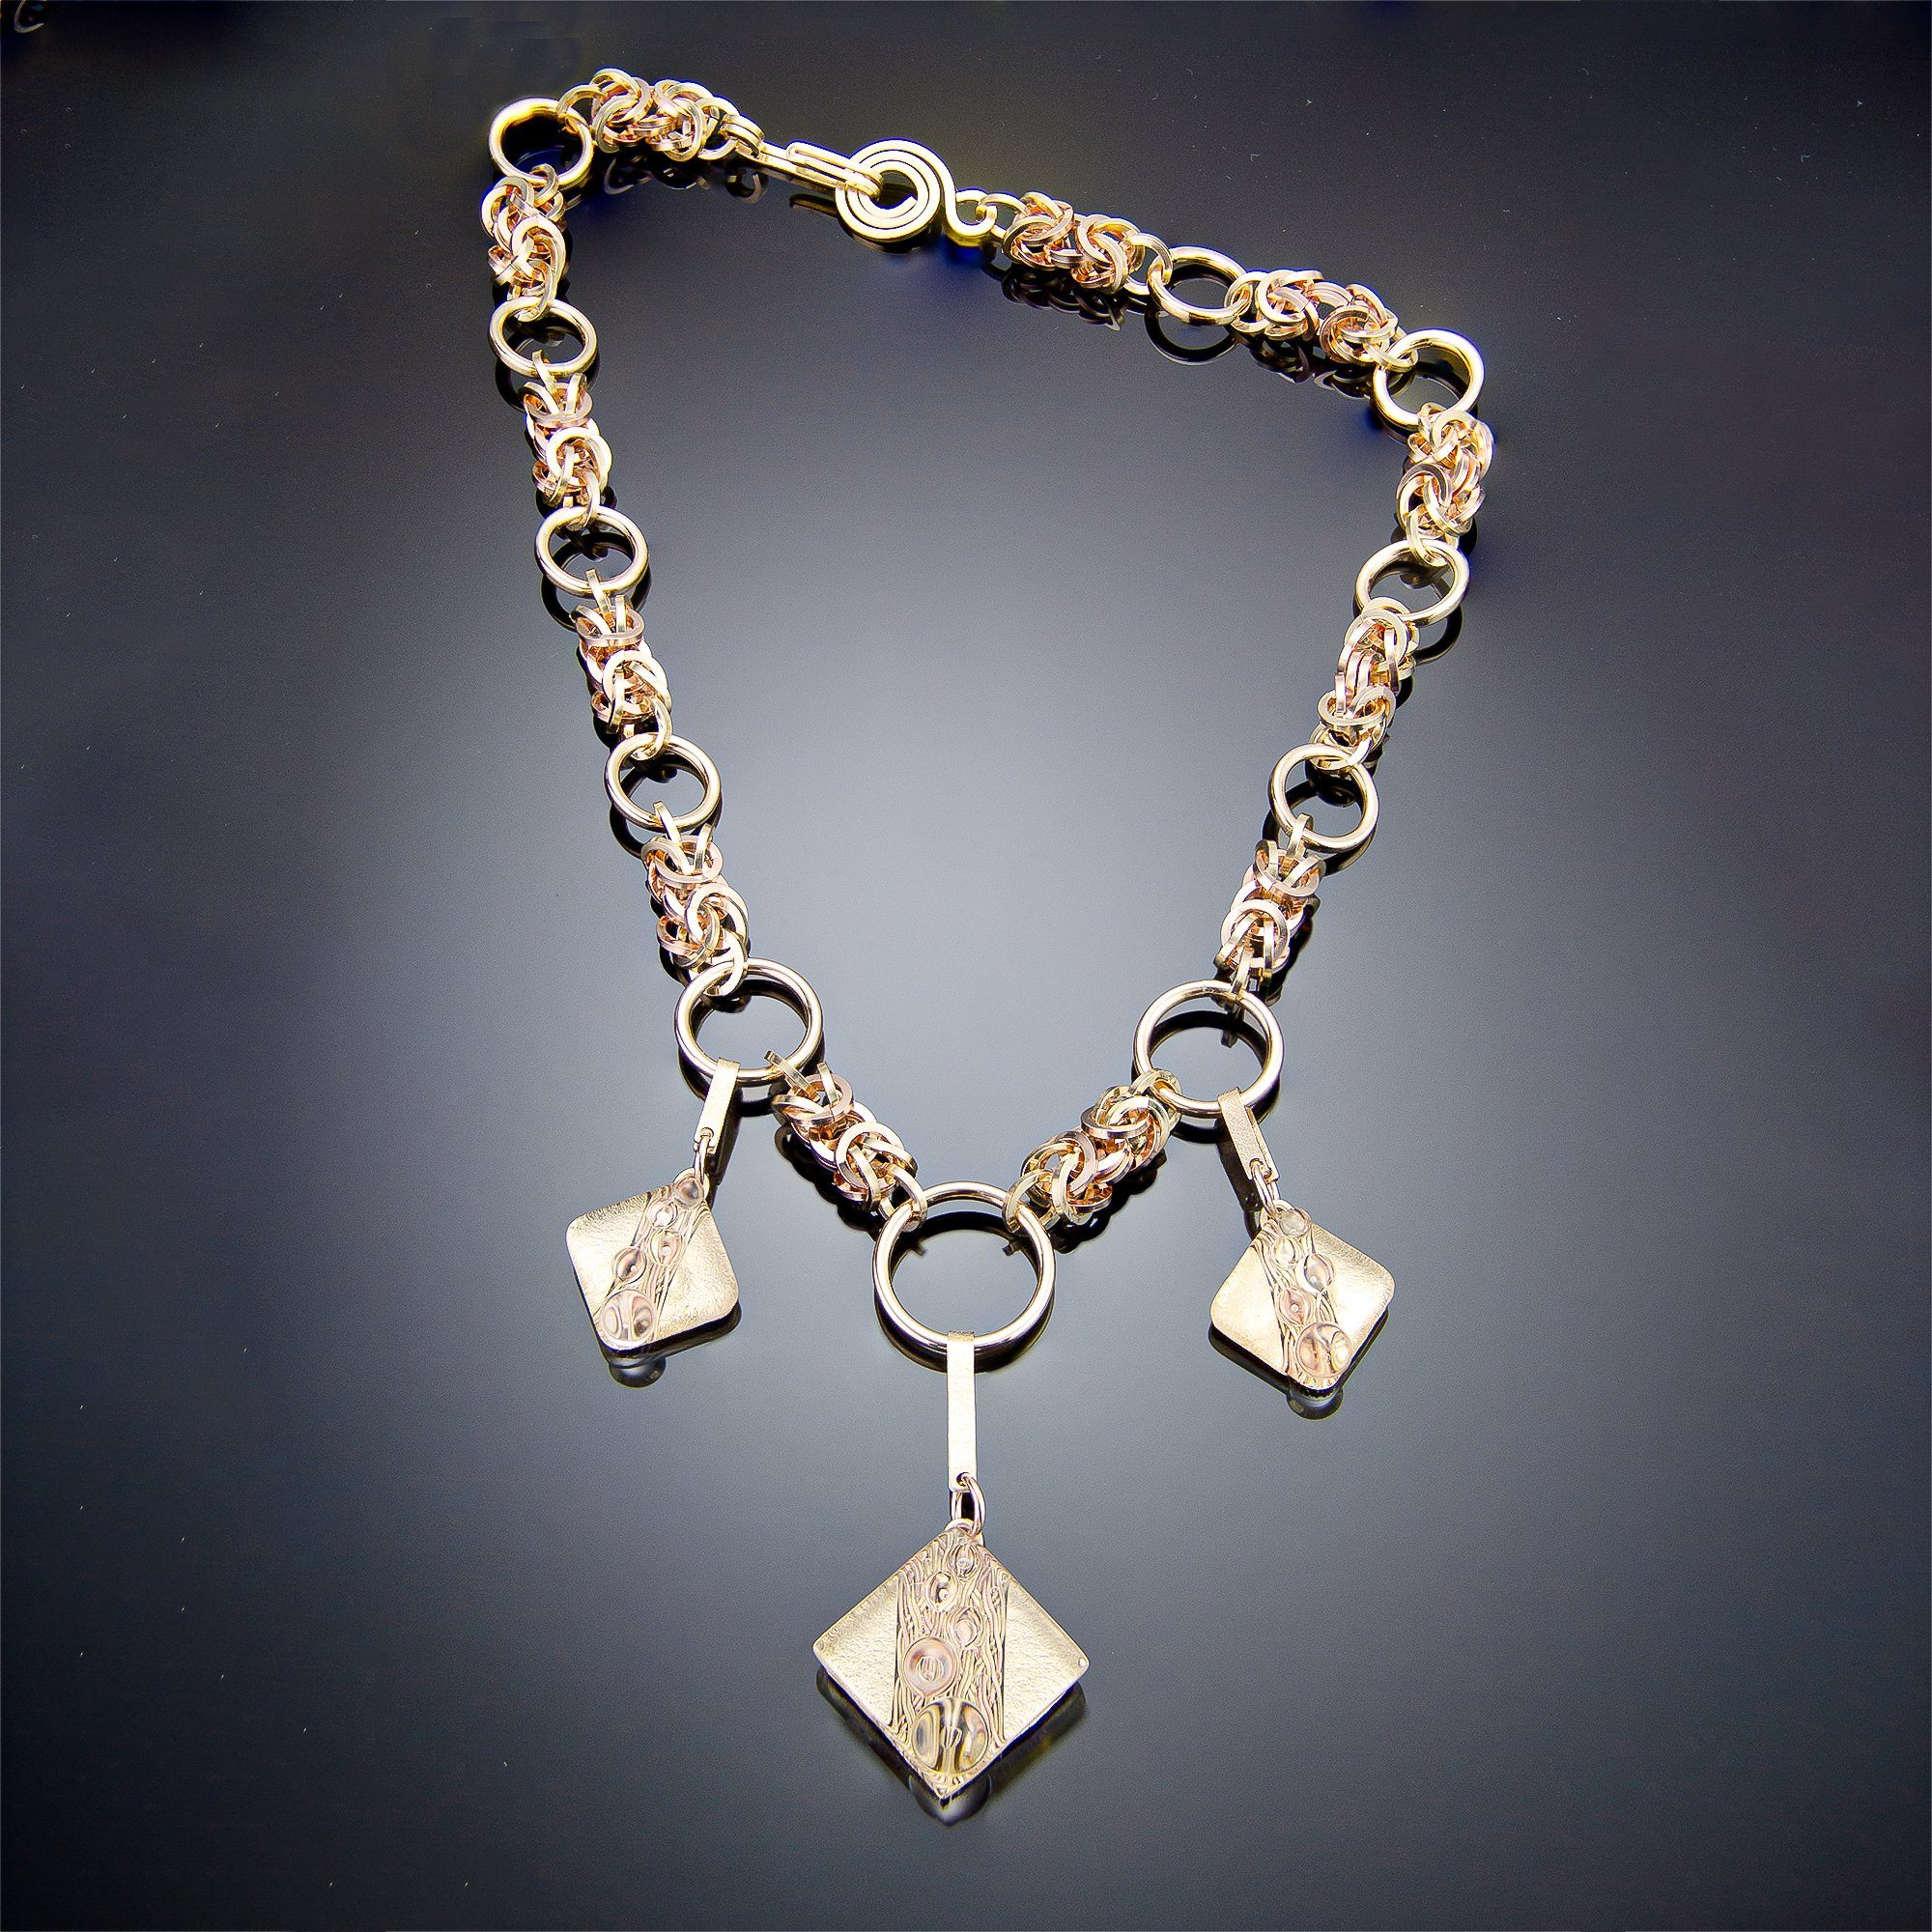 Tahmi - the art of woven metal: Bubbly Series - Woven Metal Handmade Necklace in Diamond and Gold